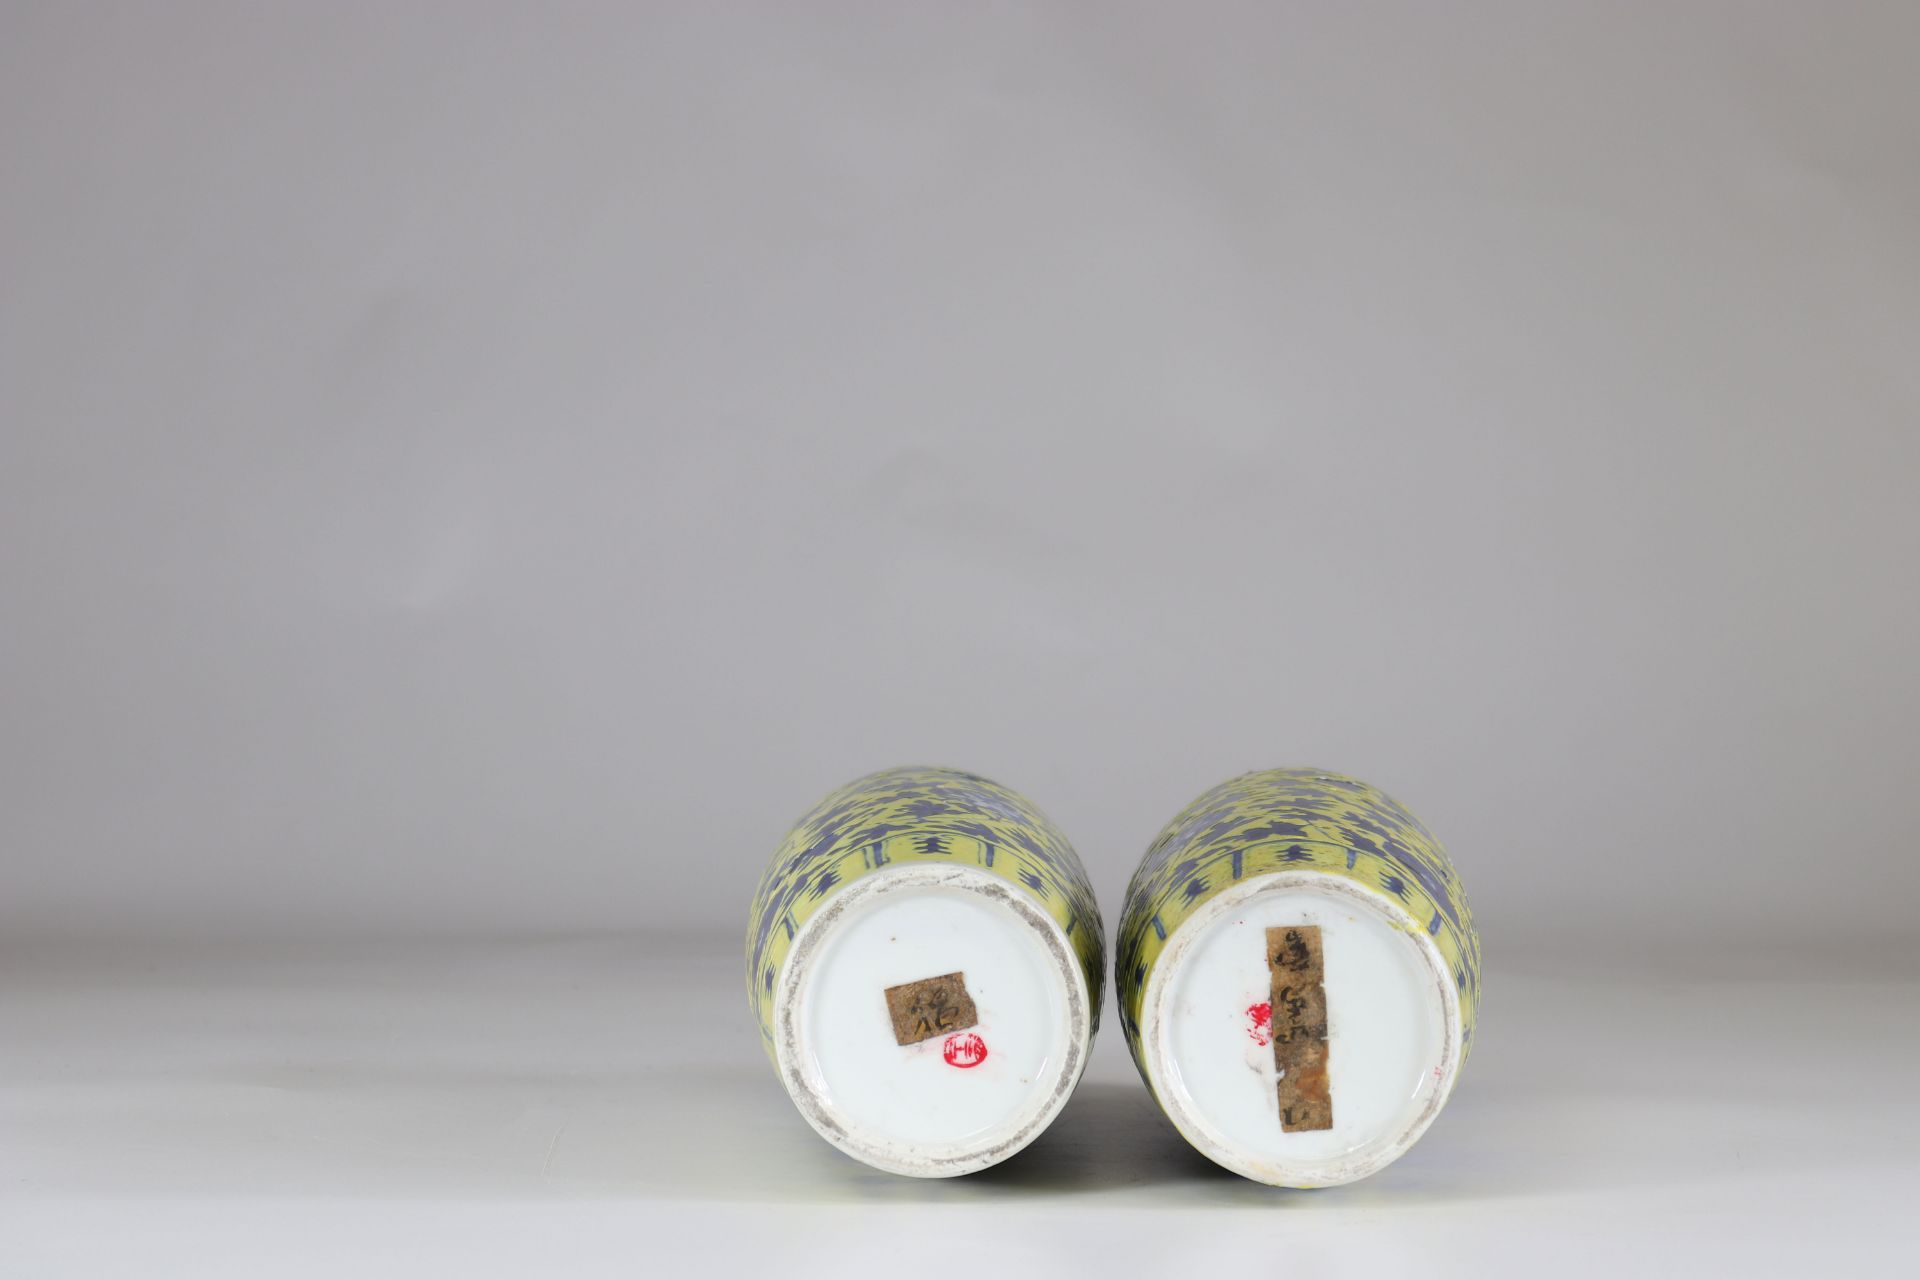 Asia pair of porcelain vases on a yellow background China? - Image 2 of 2